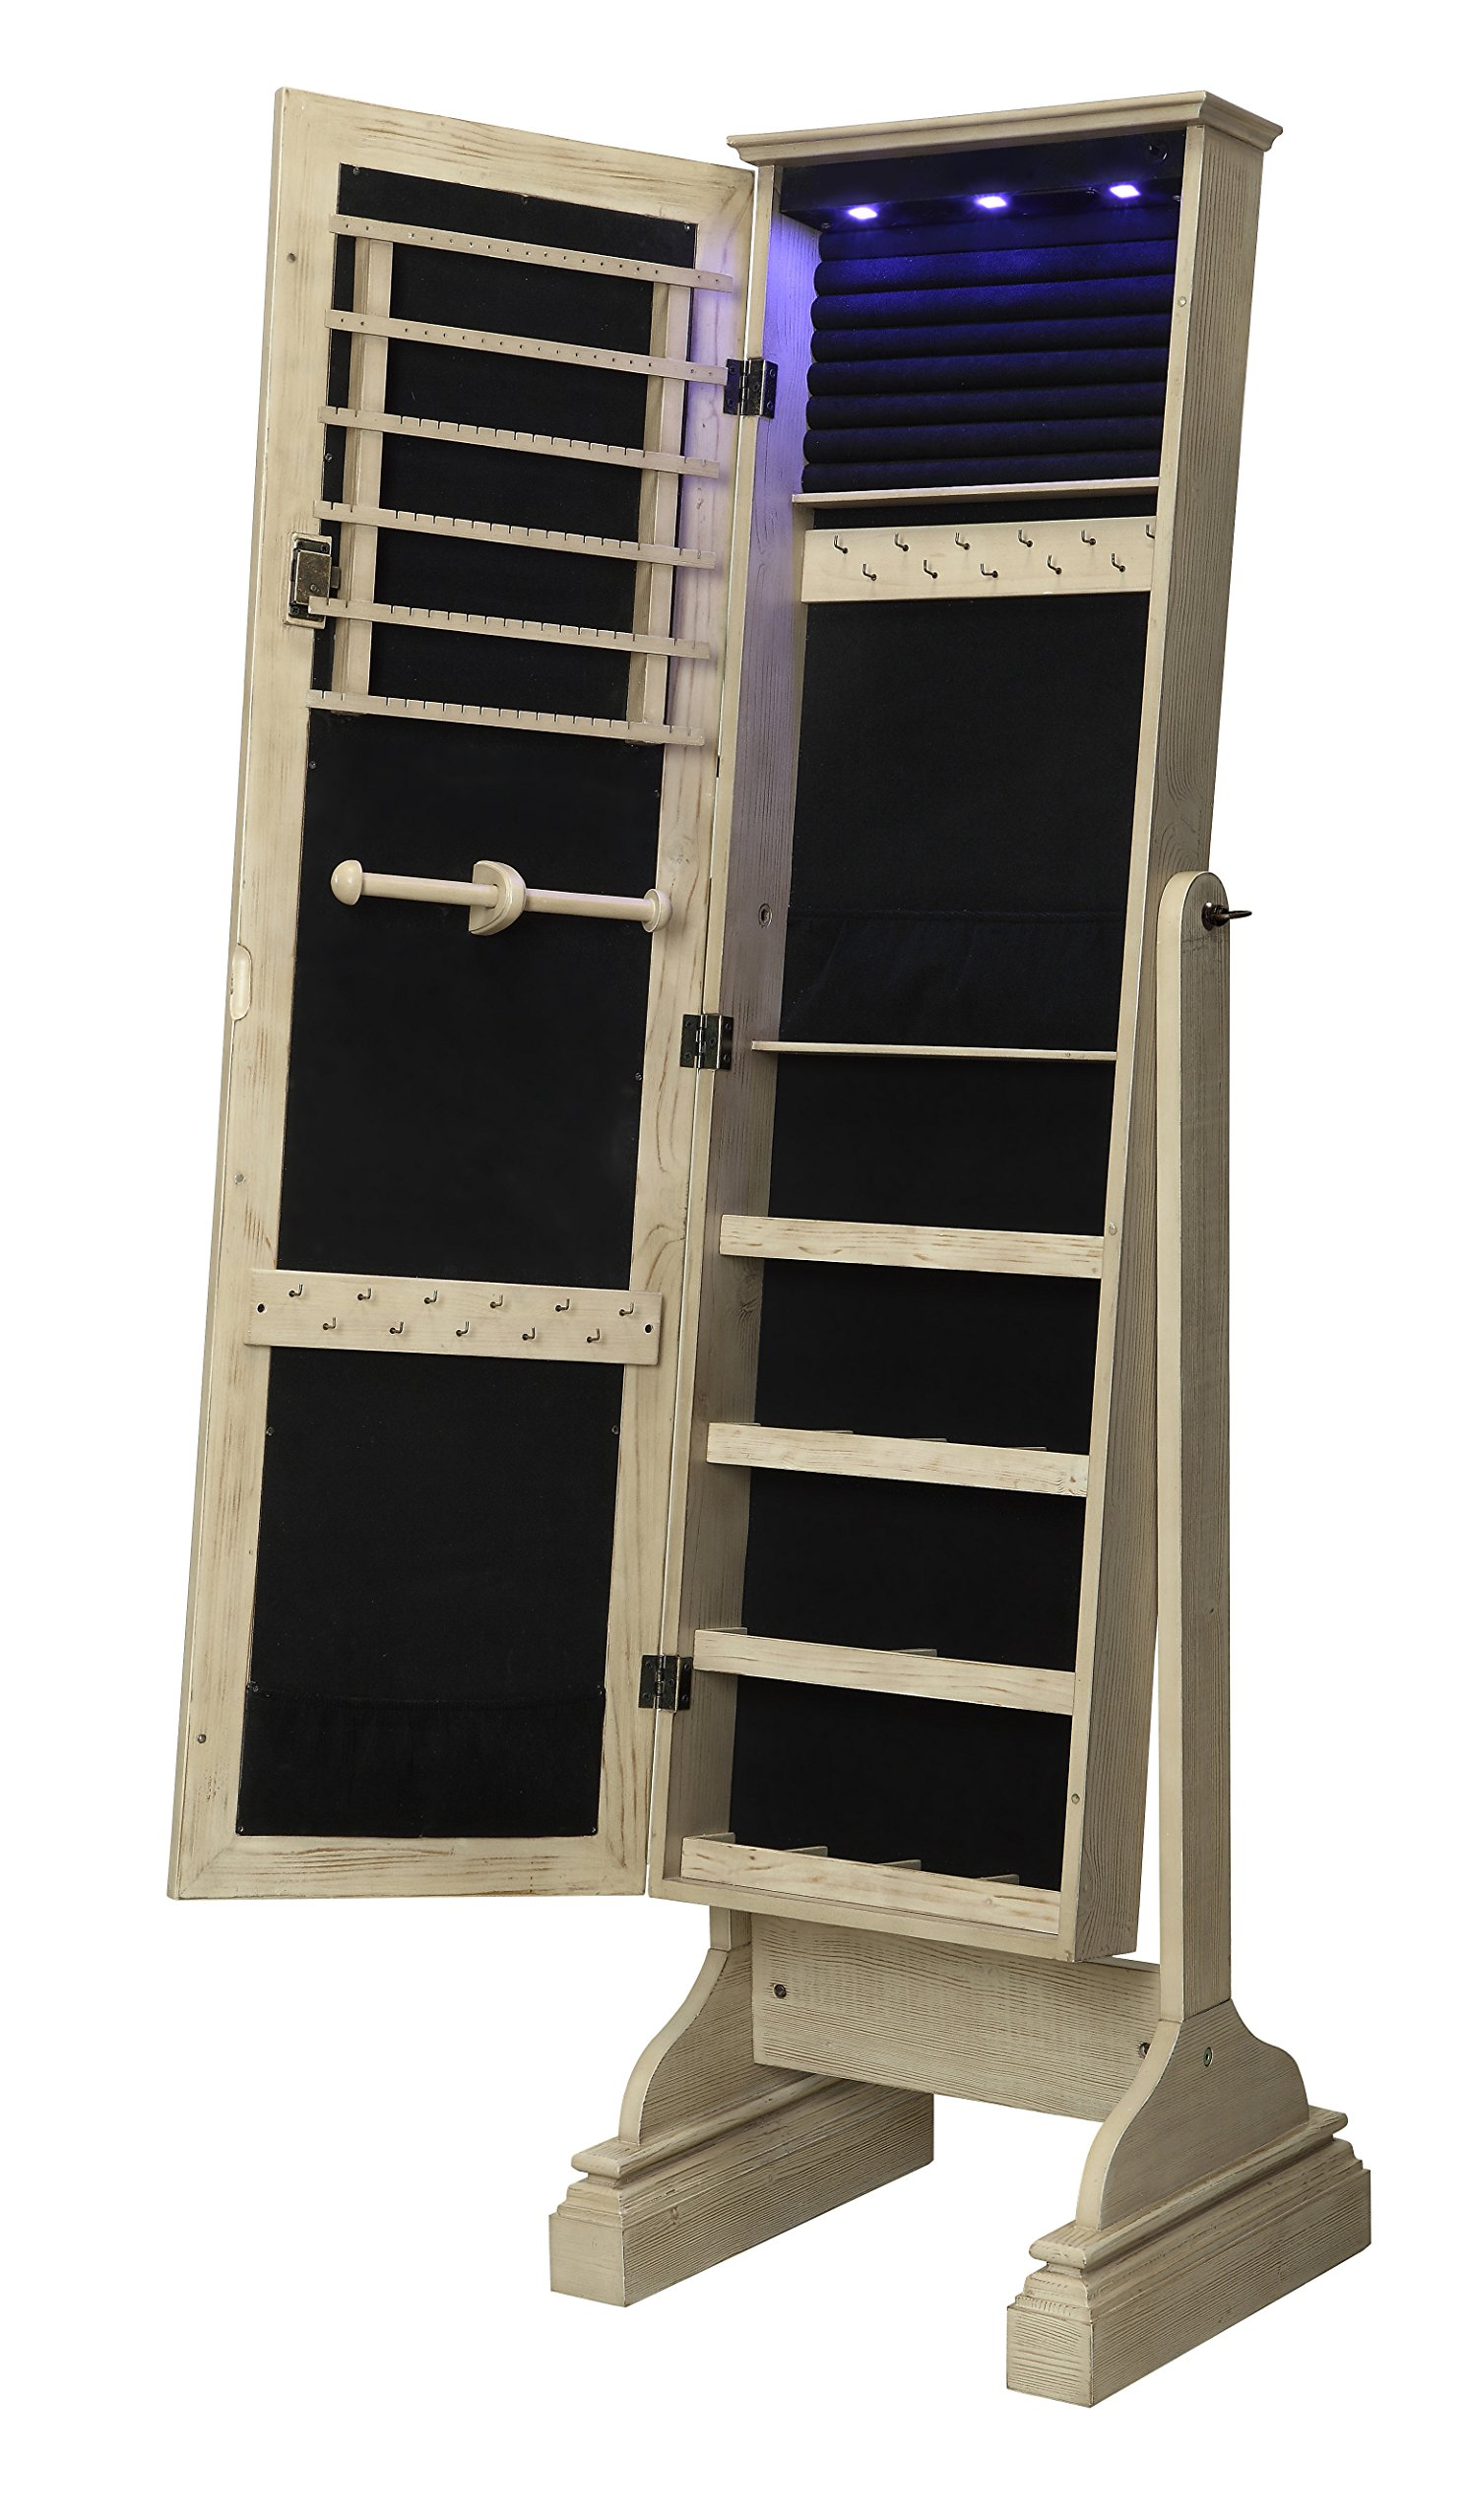 Kathy Ireland Home Full Length Mirrored Standing Jewelry Armoire Organizer Cabinet with LED lights from Abington Lane